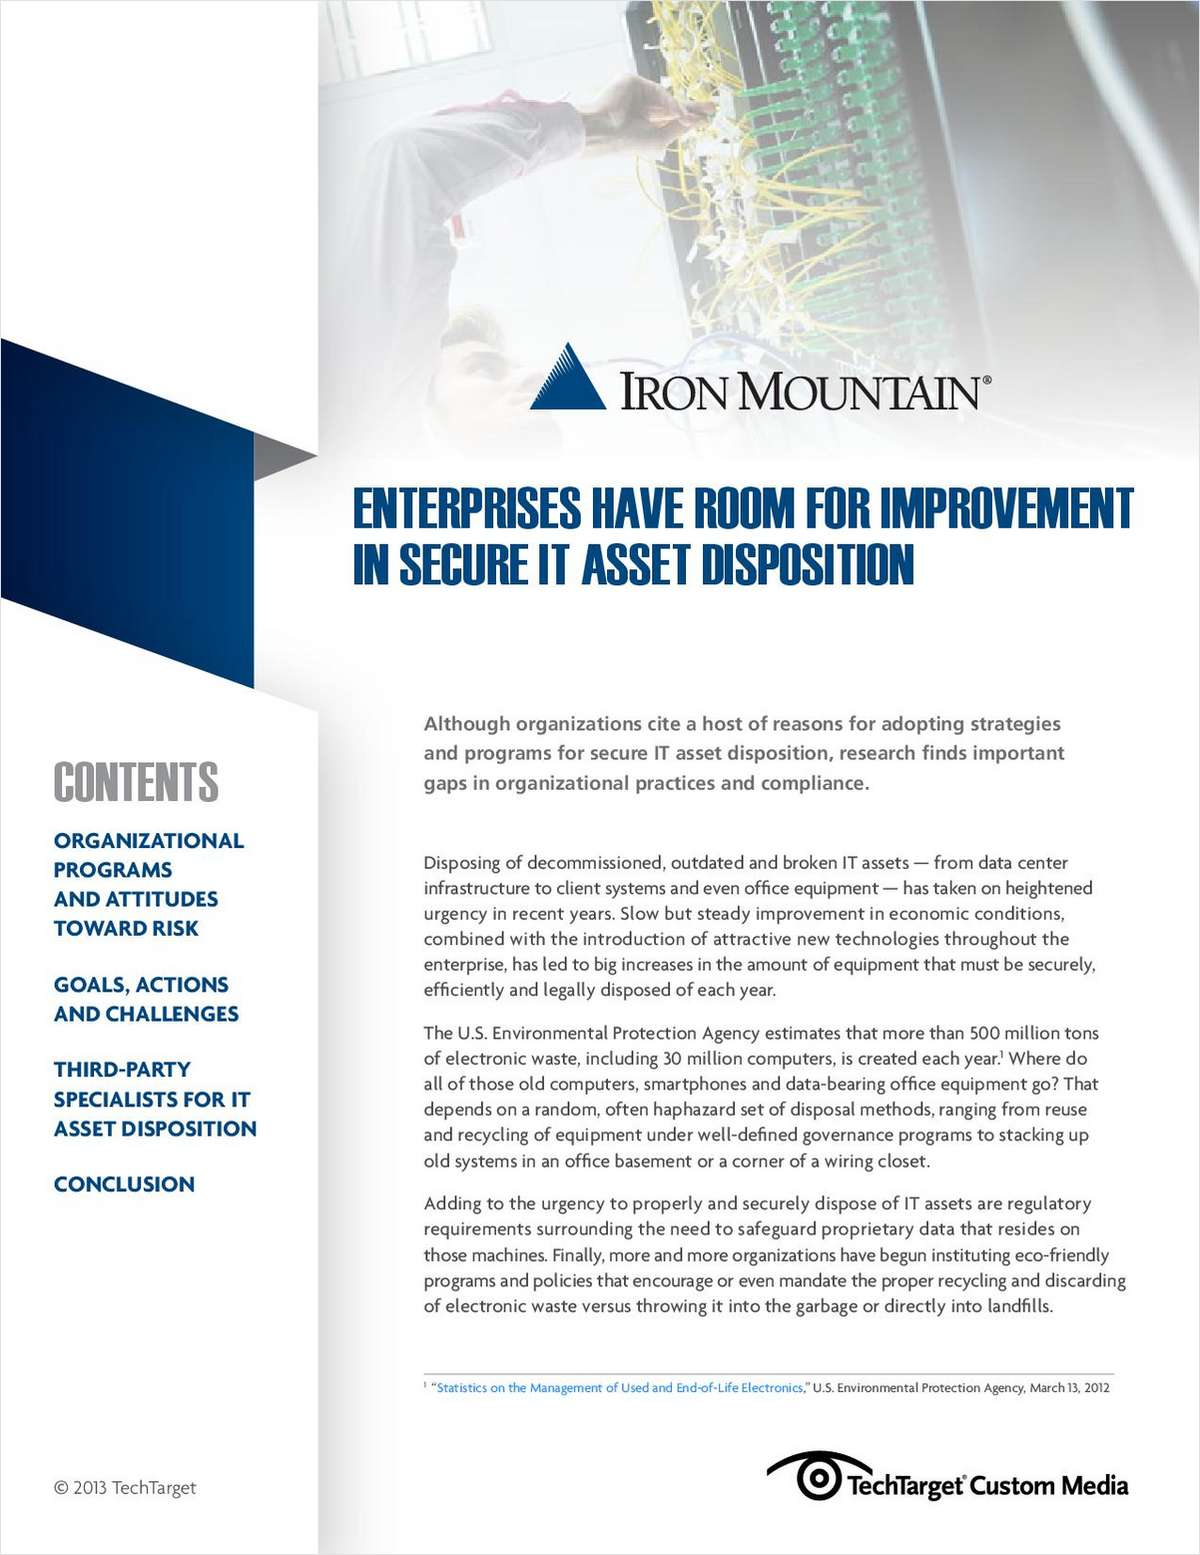 Room for Improvement in Secure IT Asset Disposition